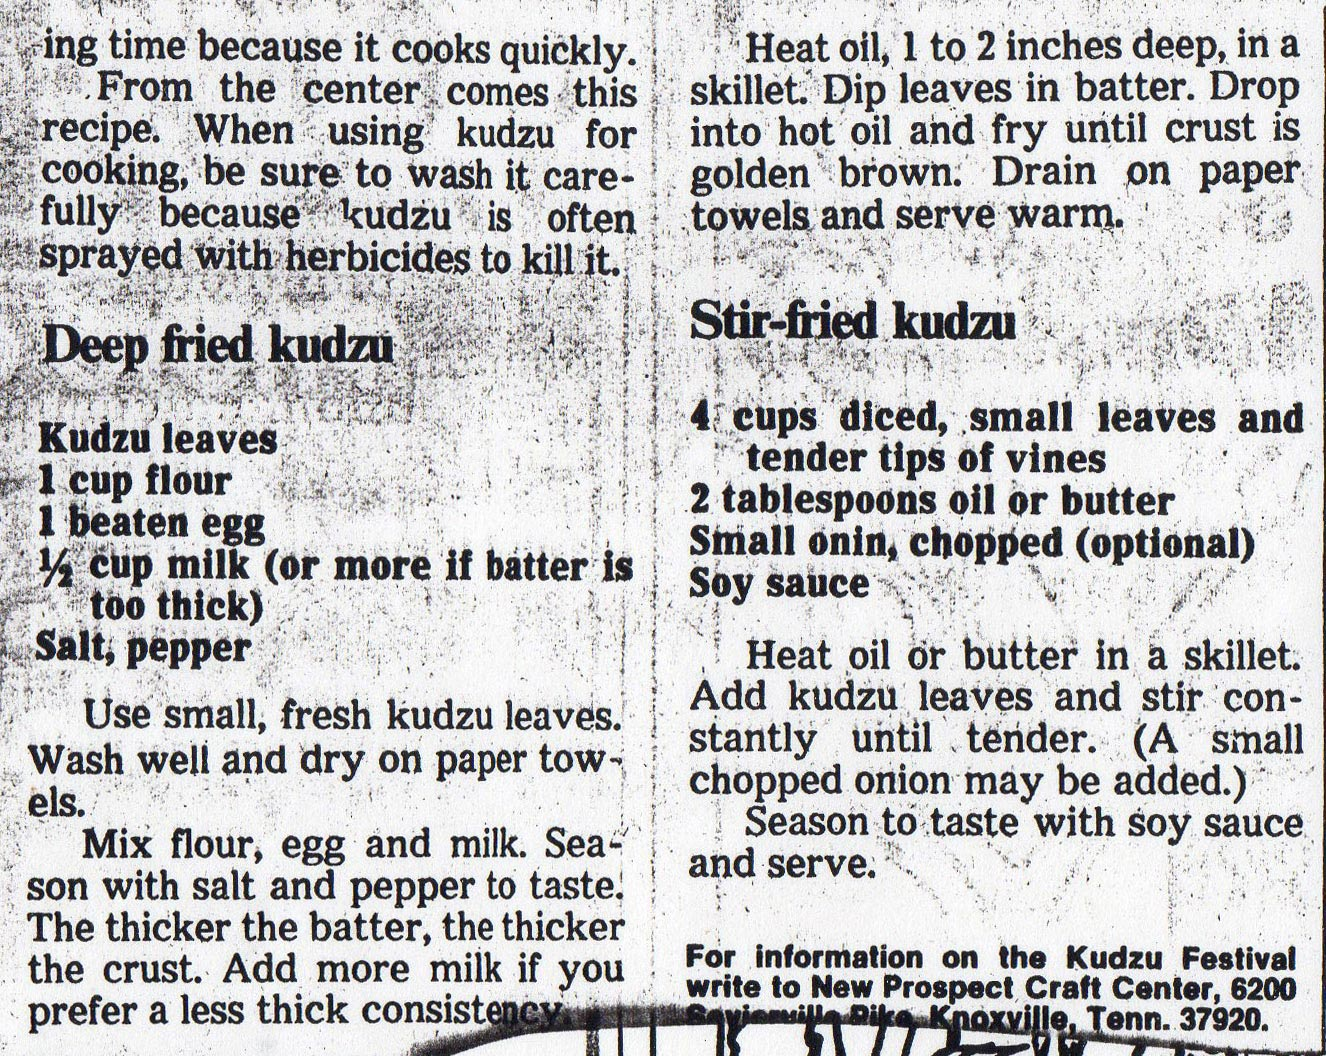 Kudzu Recipes including Deep Fried and Stir Fried